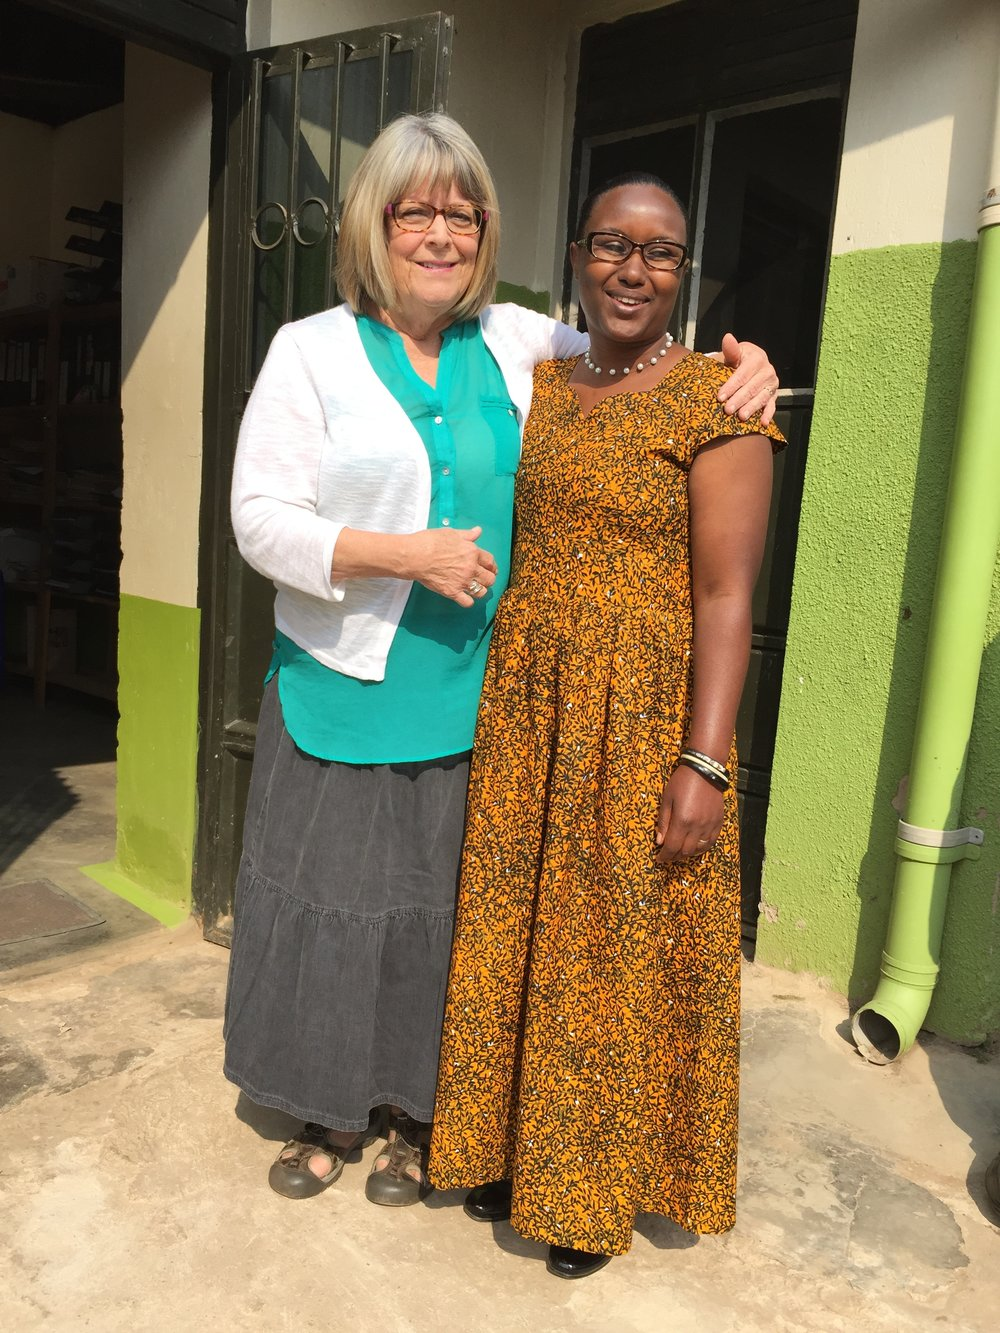 Sue and Generous ready for church outside the ACT Empowerment Center